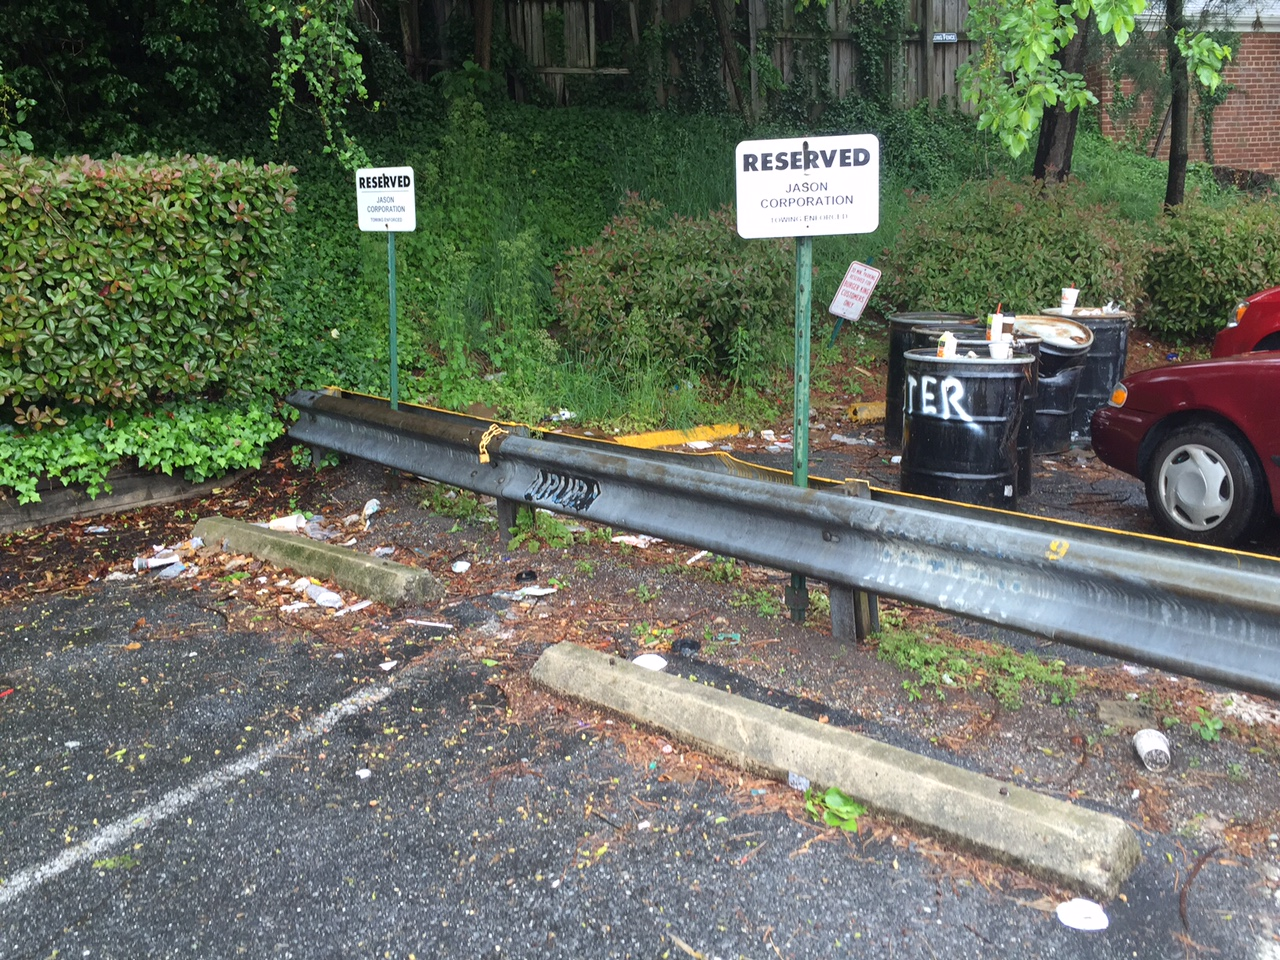 Commissioners Sally Gresham and Mary Beth Ray also pointed out the trash littering the parking area.